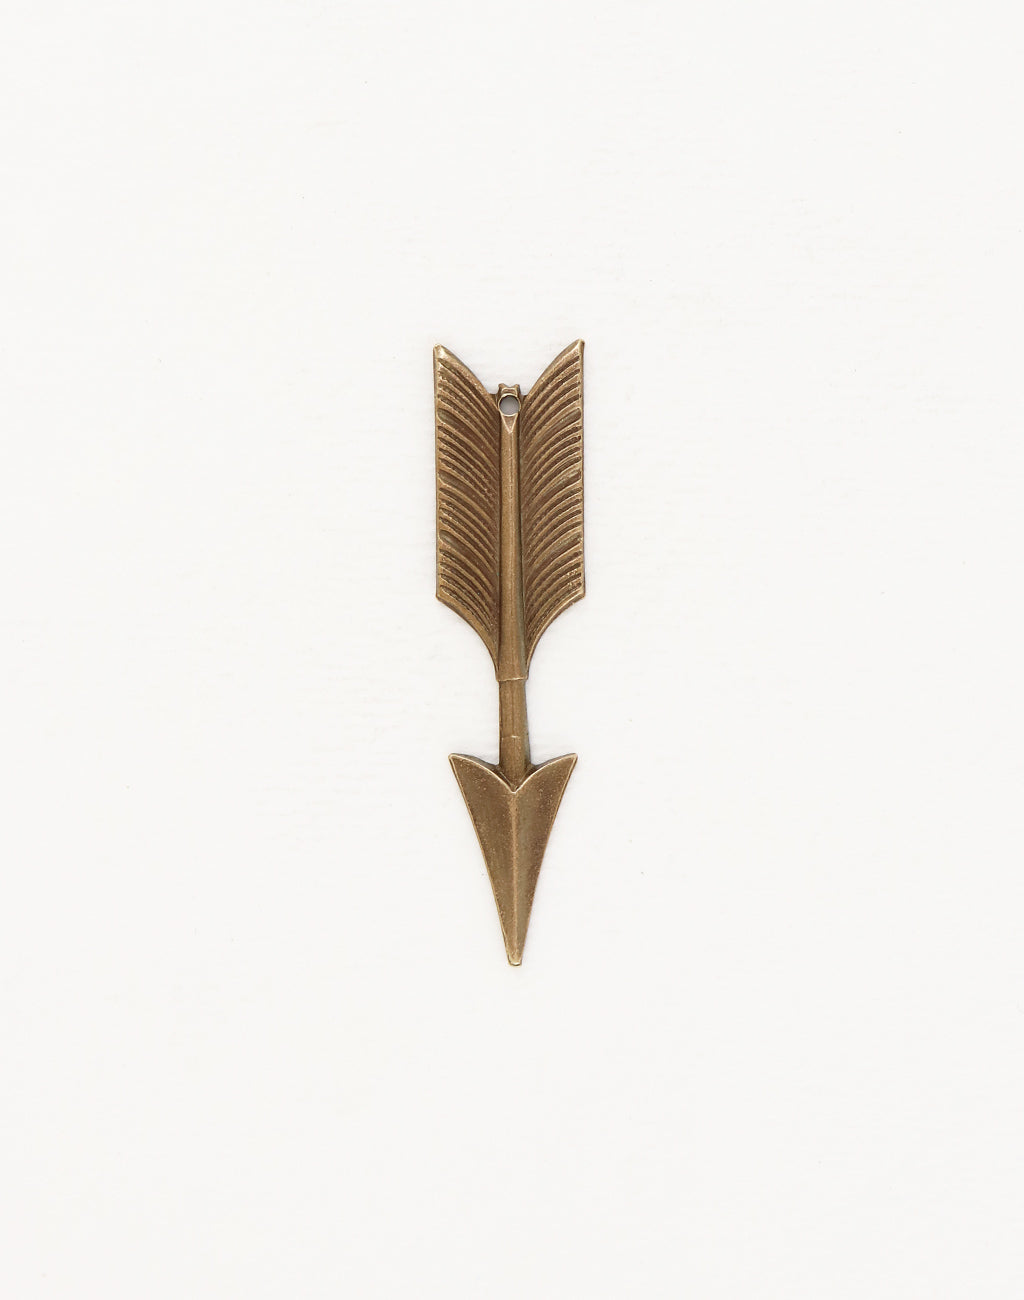 Feathered Arrow, 45x11mm, (1pc)